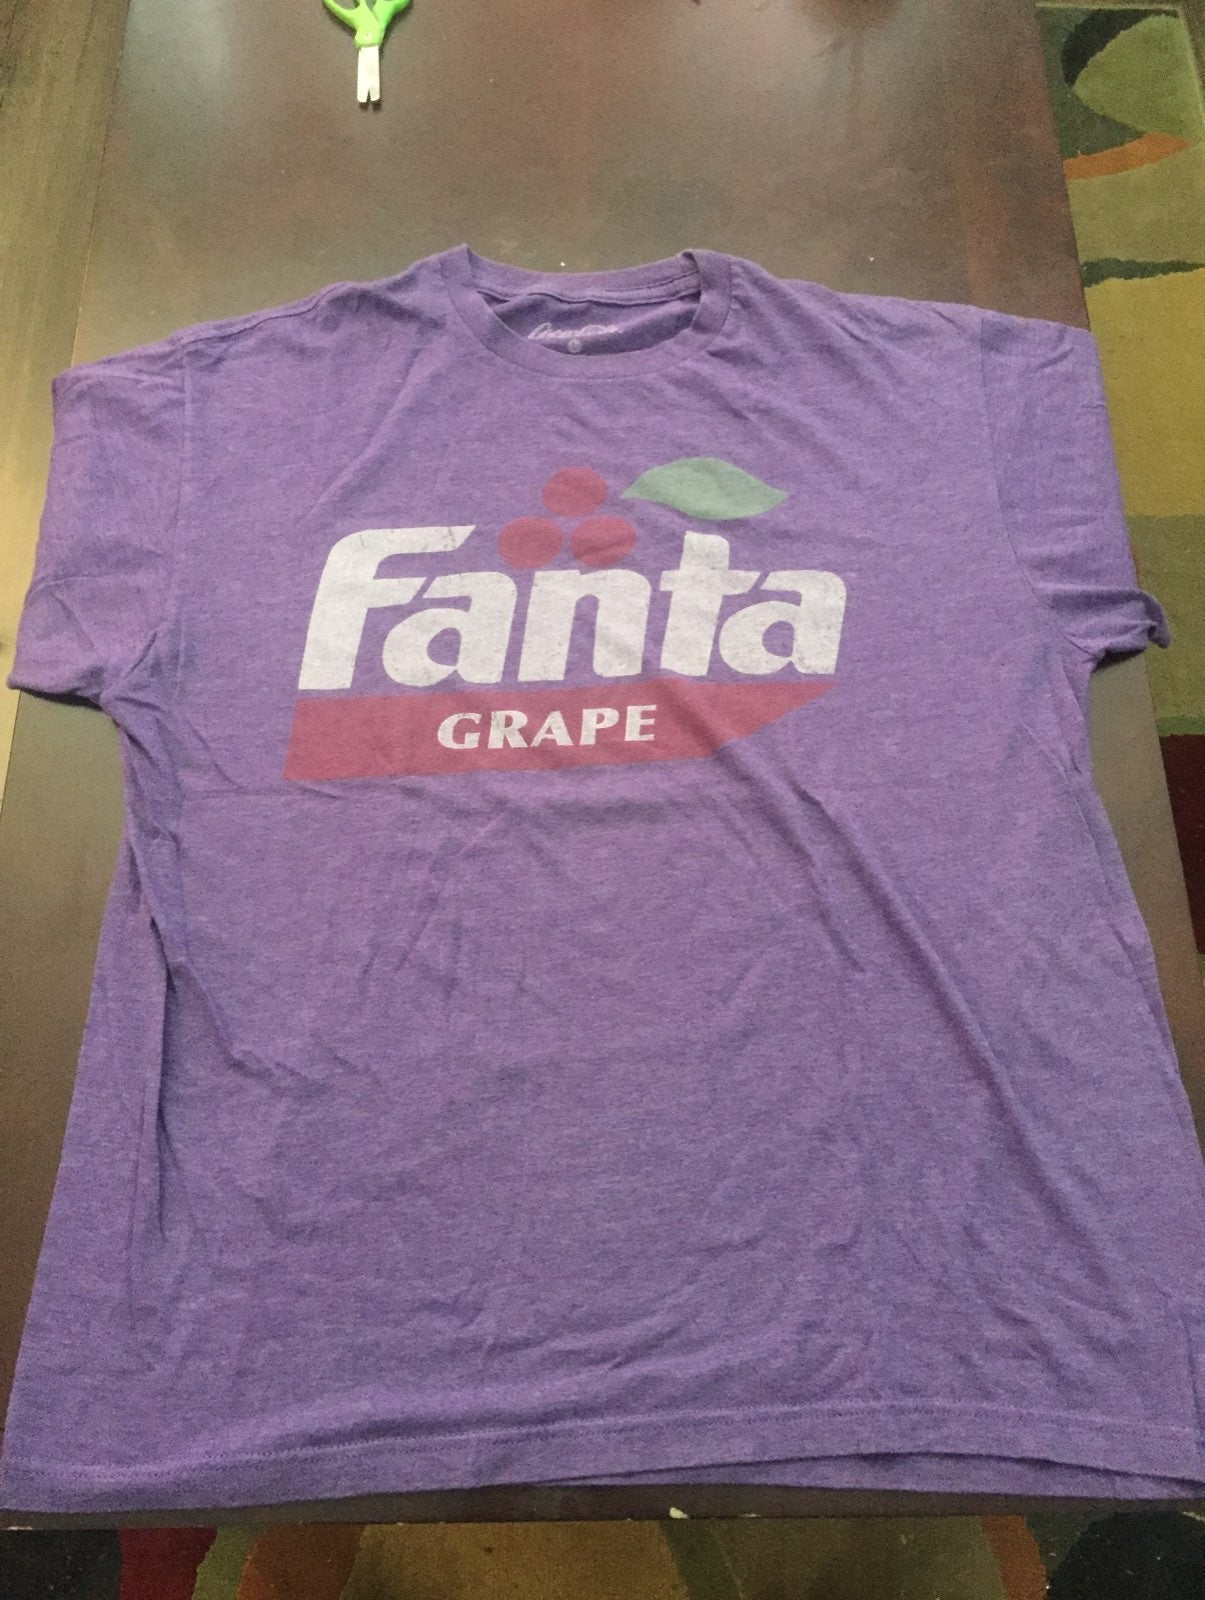 Fanta Grape men's shirt